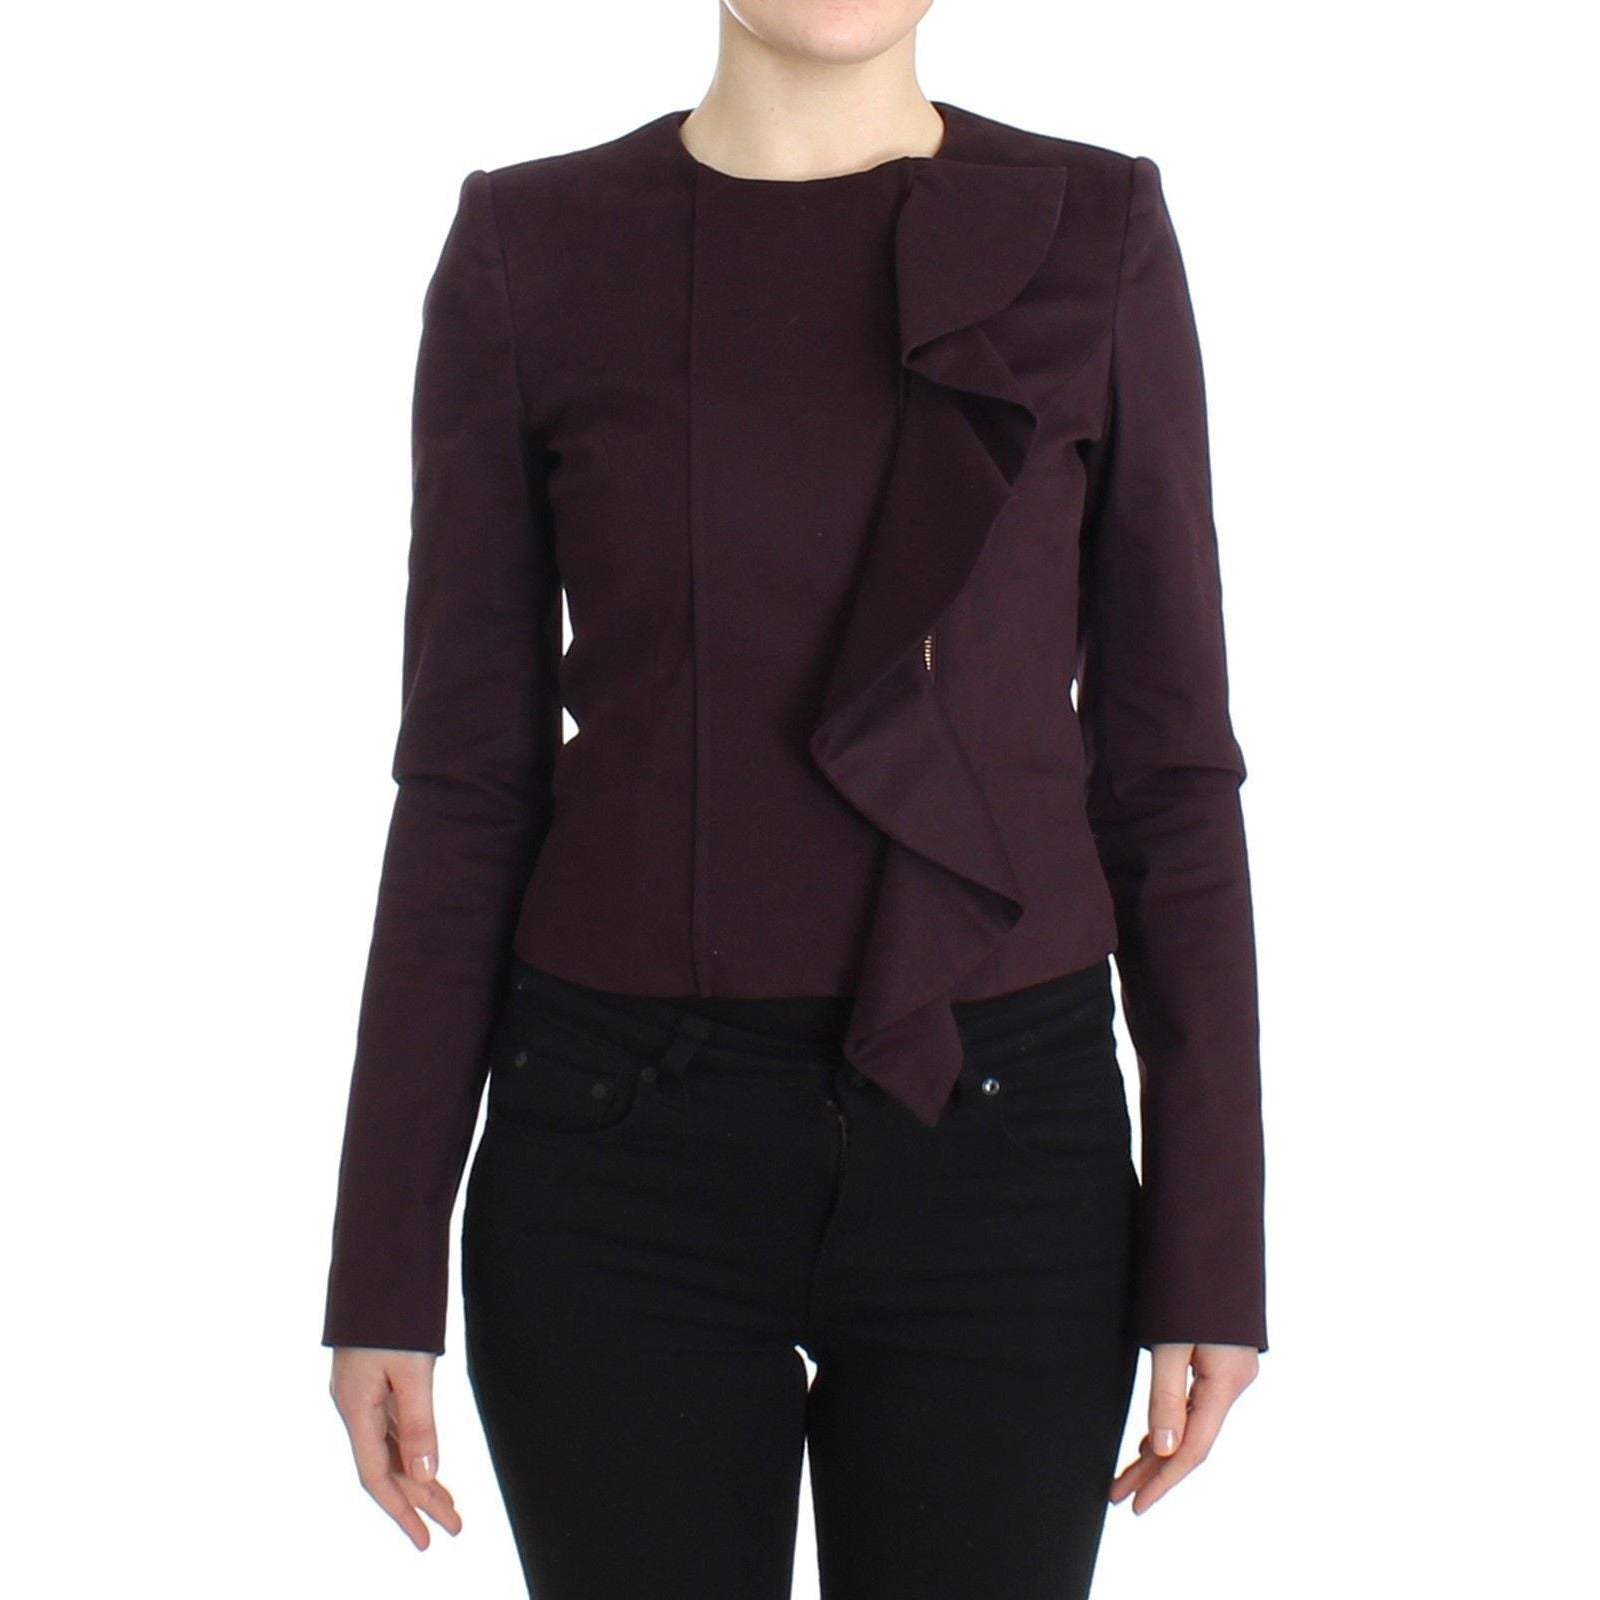 Purple Ruched Jacket Coat Blazer Short GF Ferre